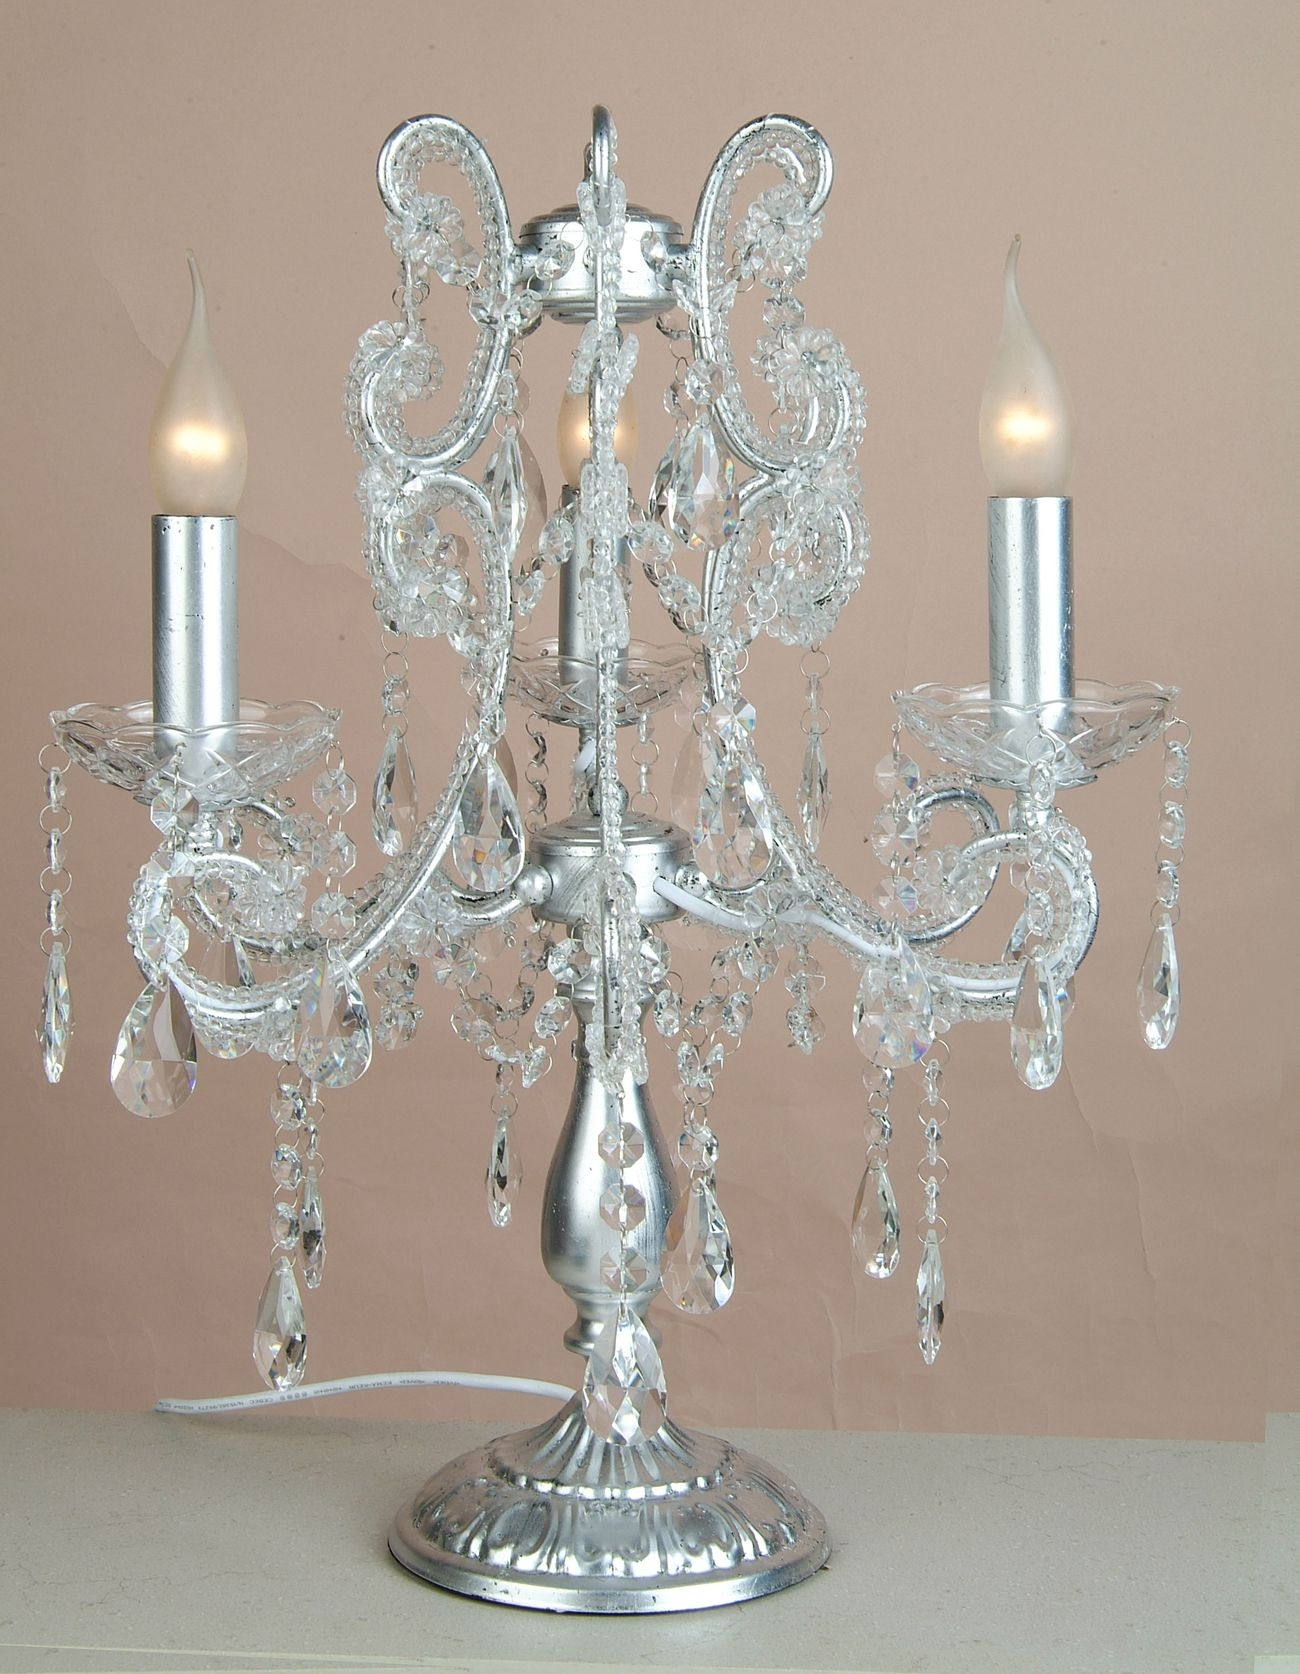 Chandelier Table Lamps Uk Roselawnlutheran With Regard To Table Chandeliers (Image 6 of 15)